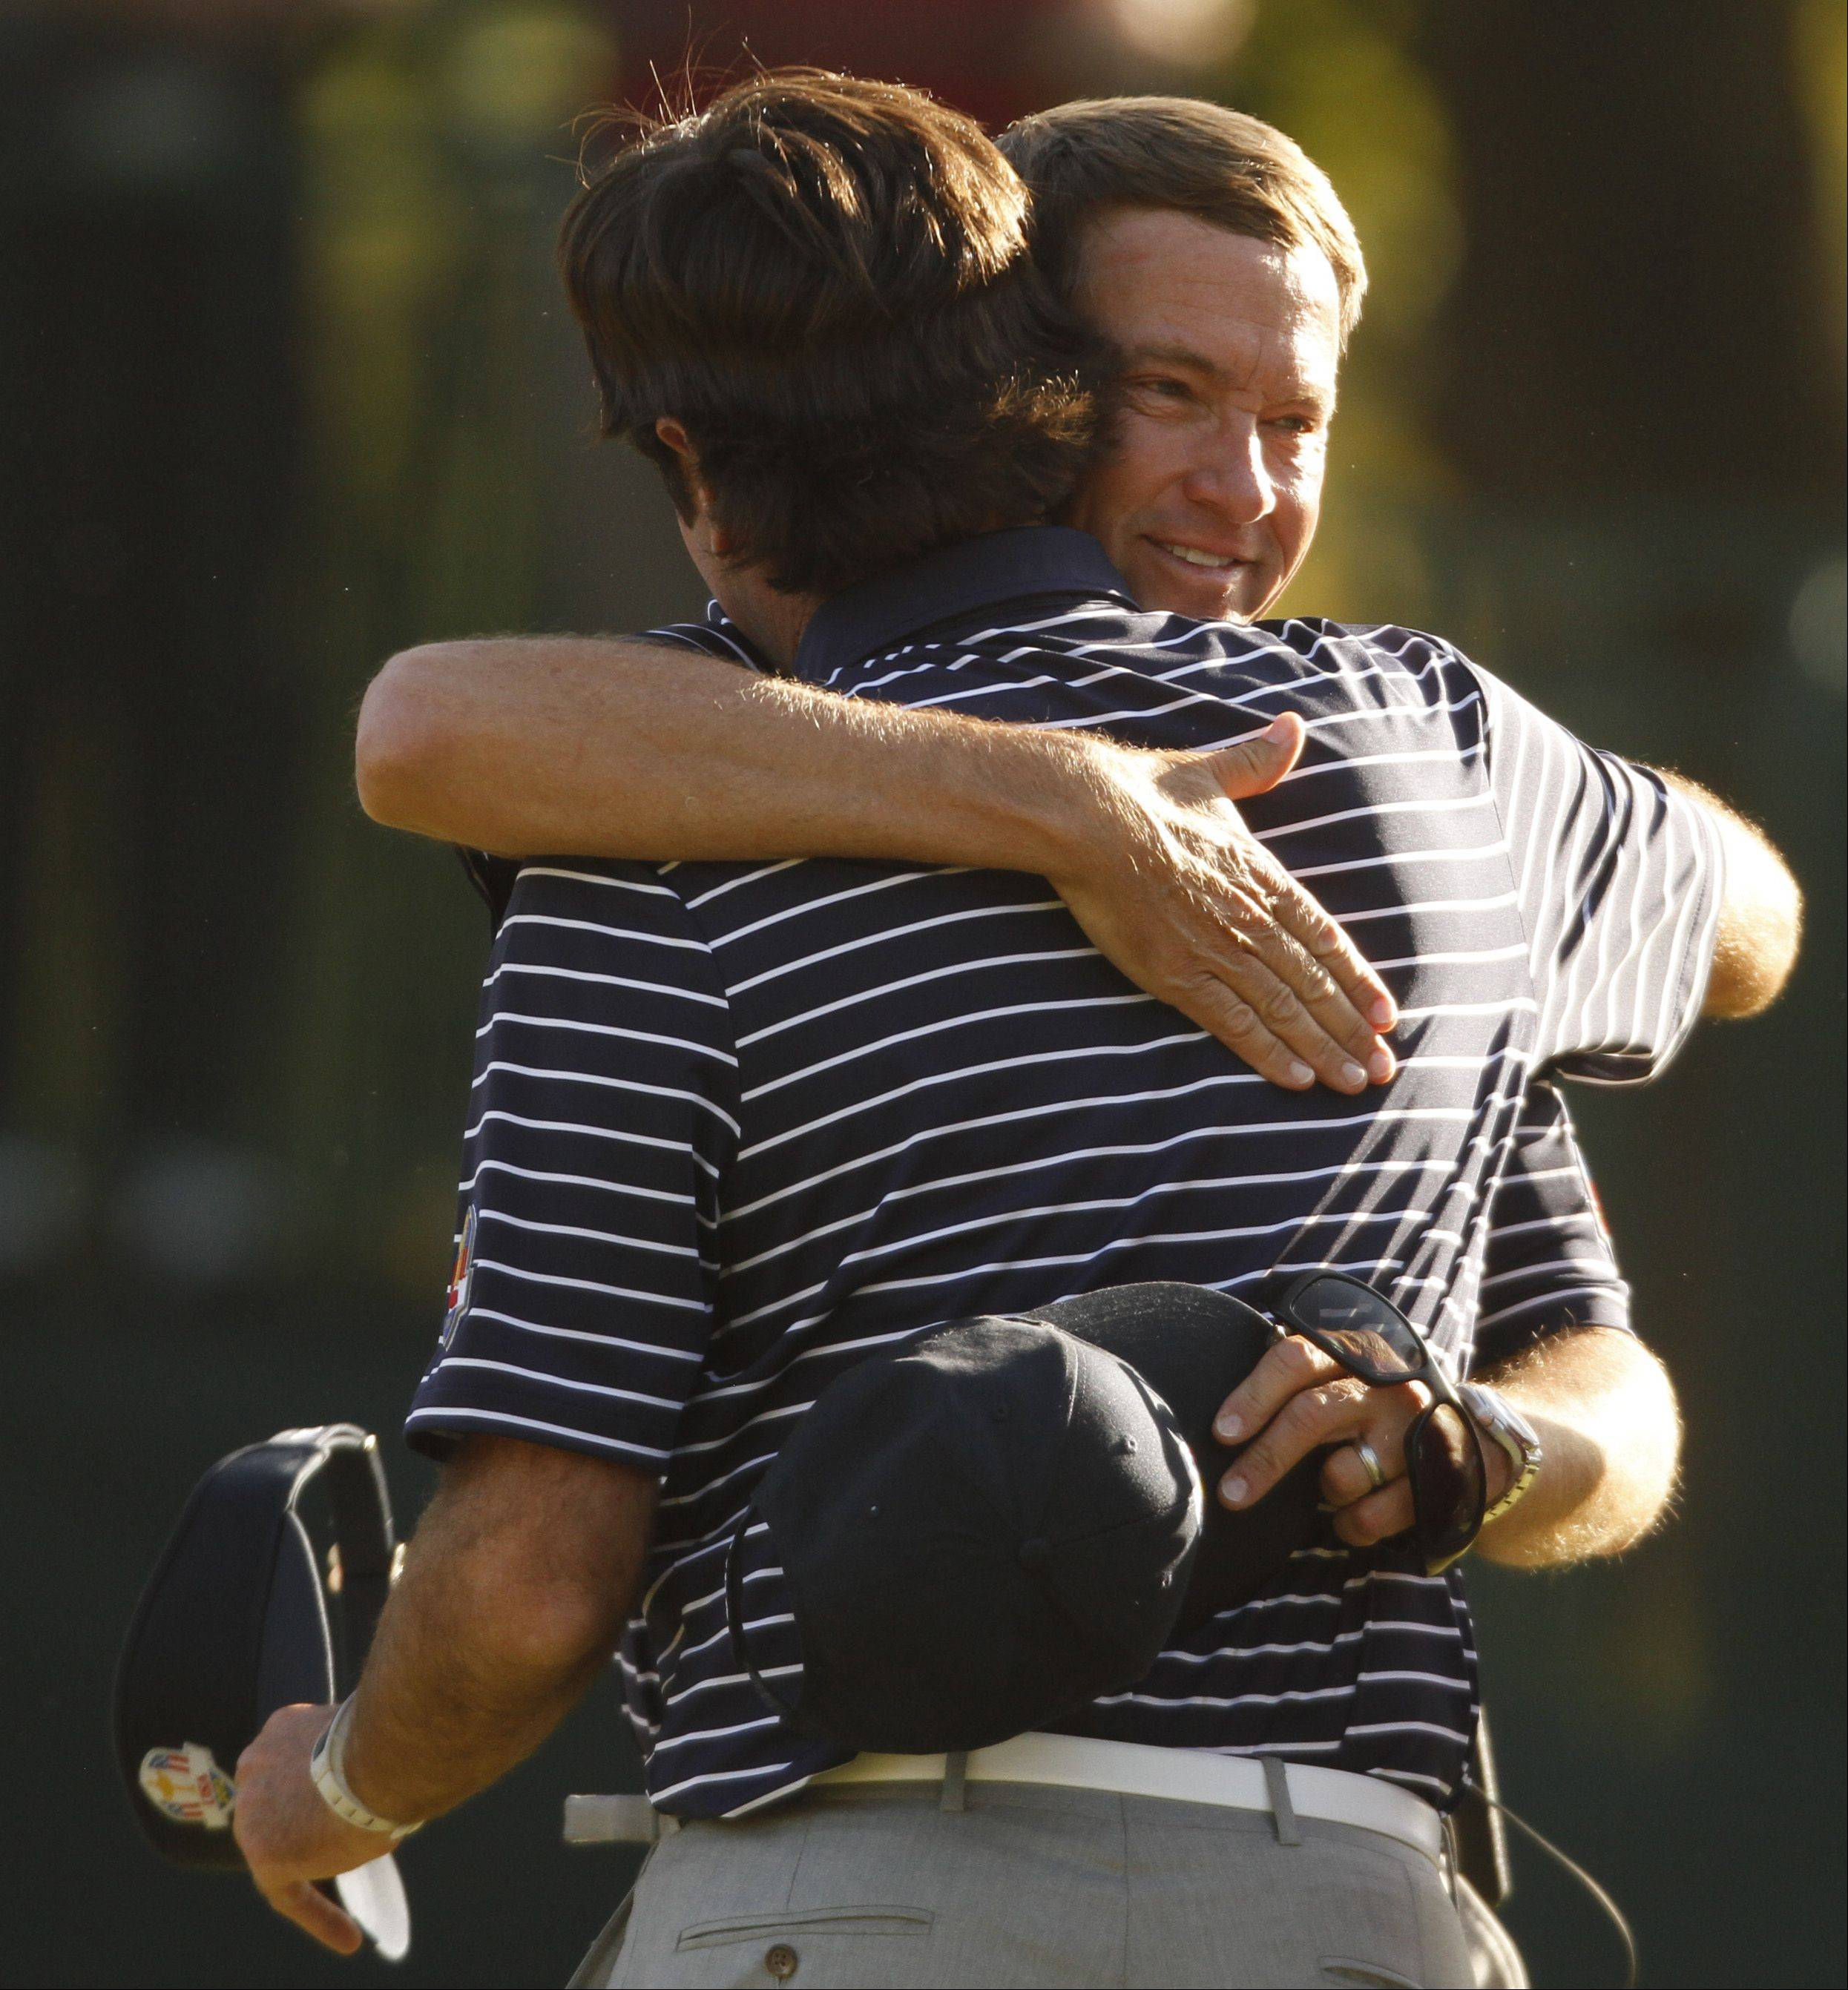 Team USA captain Davis Love III hugs player Bubba Watson after Watson and teammate Webb Simpson won their match Saturday afternoon.